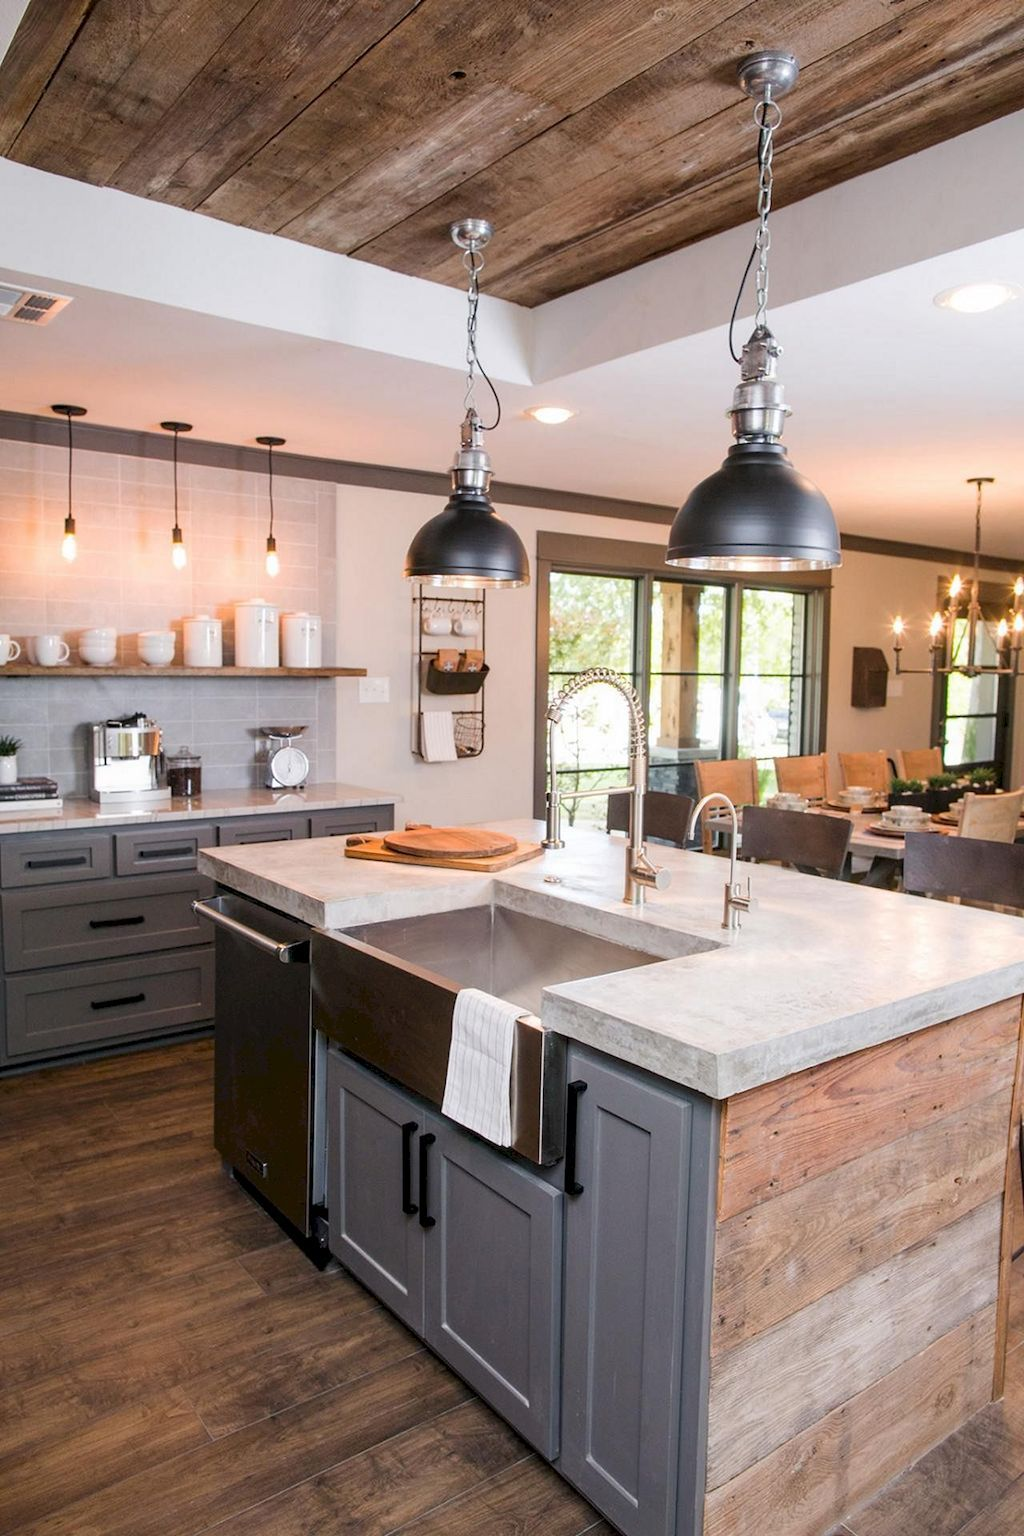 65 Modern Farmhouse Kitchen Sink Design Decor Ideas  Kitchens Endearing Farmhouse Kitchen Design Decorating Design